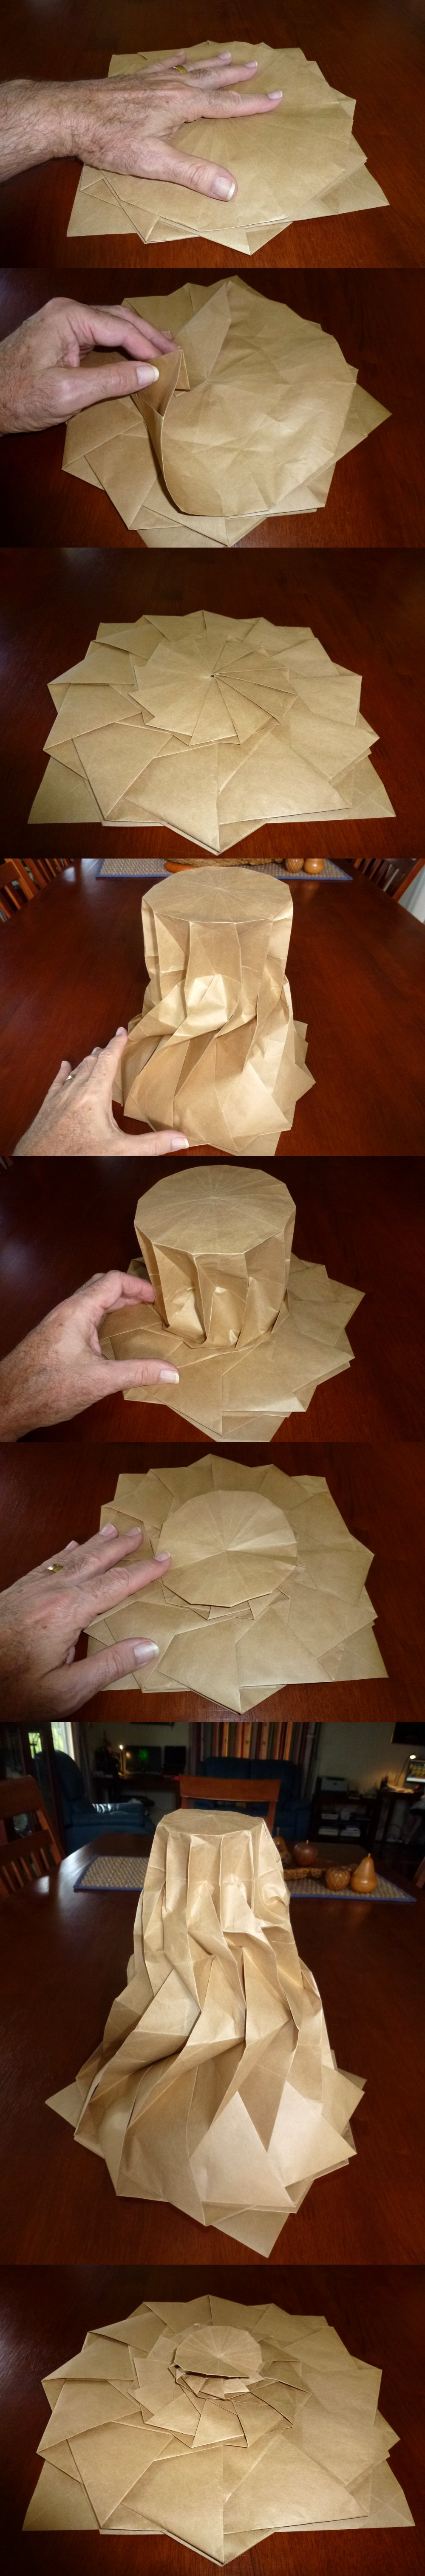 Origami Stackbox Tutorial - Stackable Boxes | Cute origami ... | 6064x1000